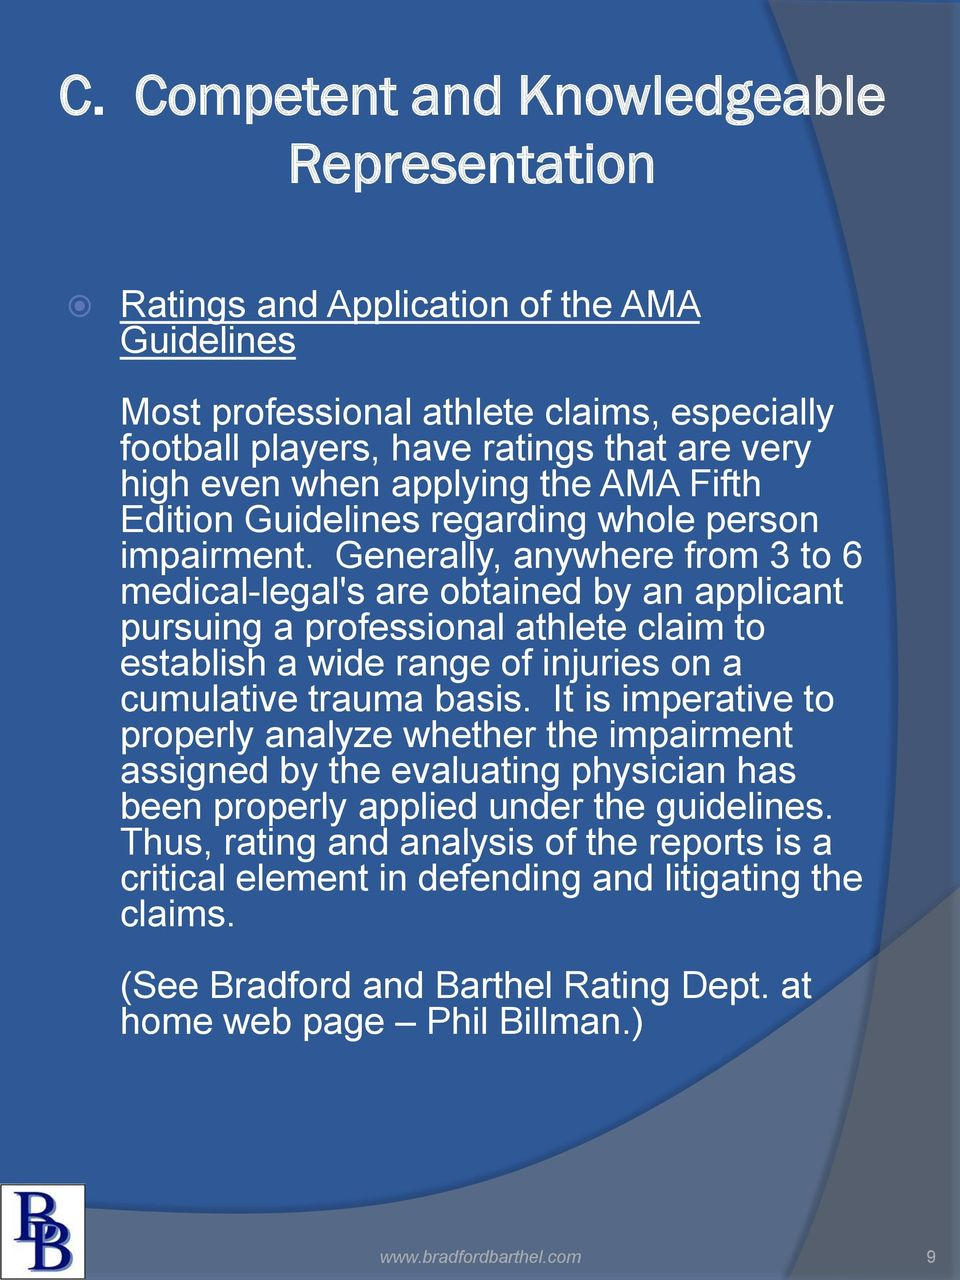 Generally, anywhere from 3 to 6 medical-legal's are obtained by an applicant pursuing a professional athlete claim to establish a wide range of injuries on a cumulative trauma basis.